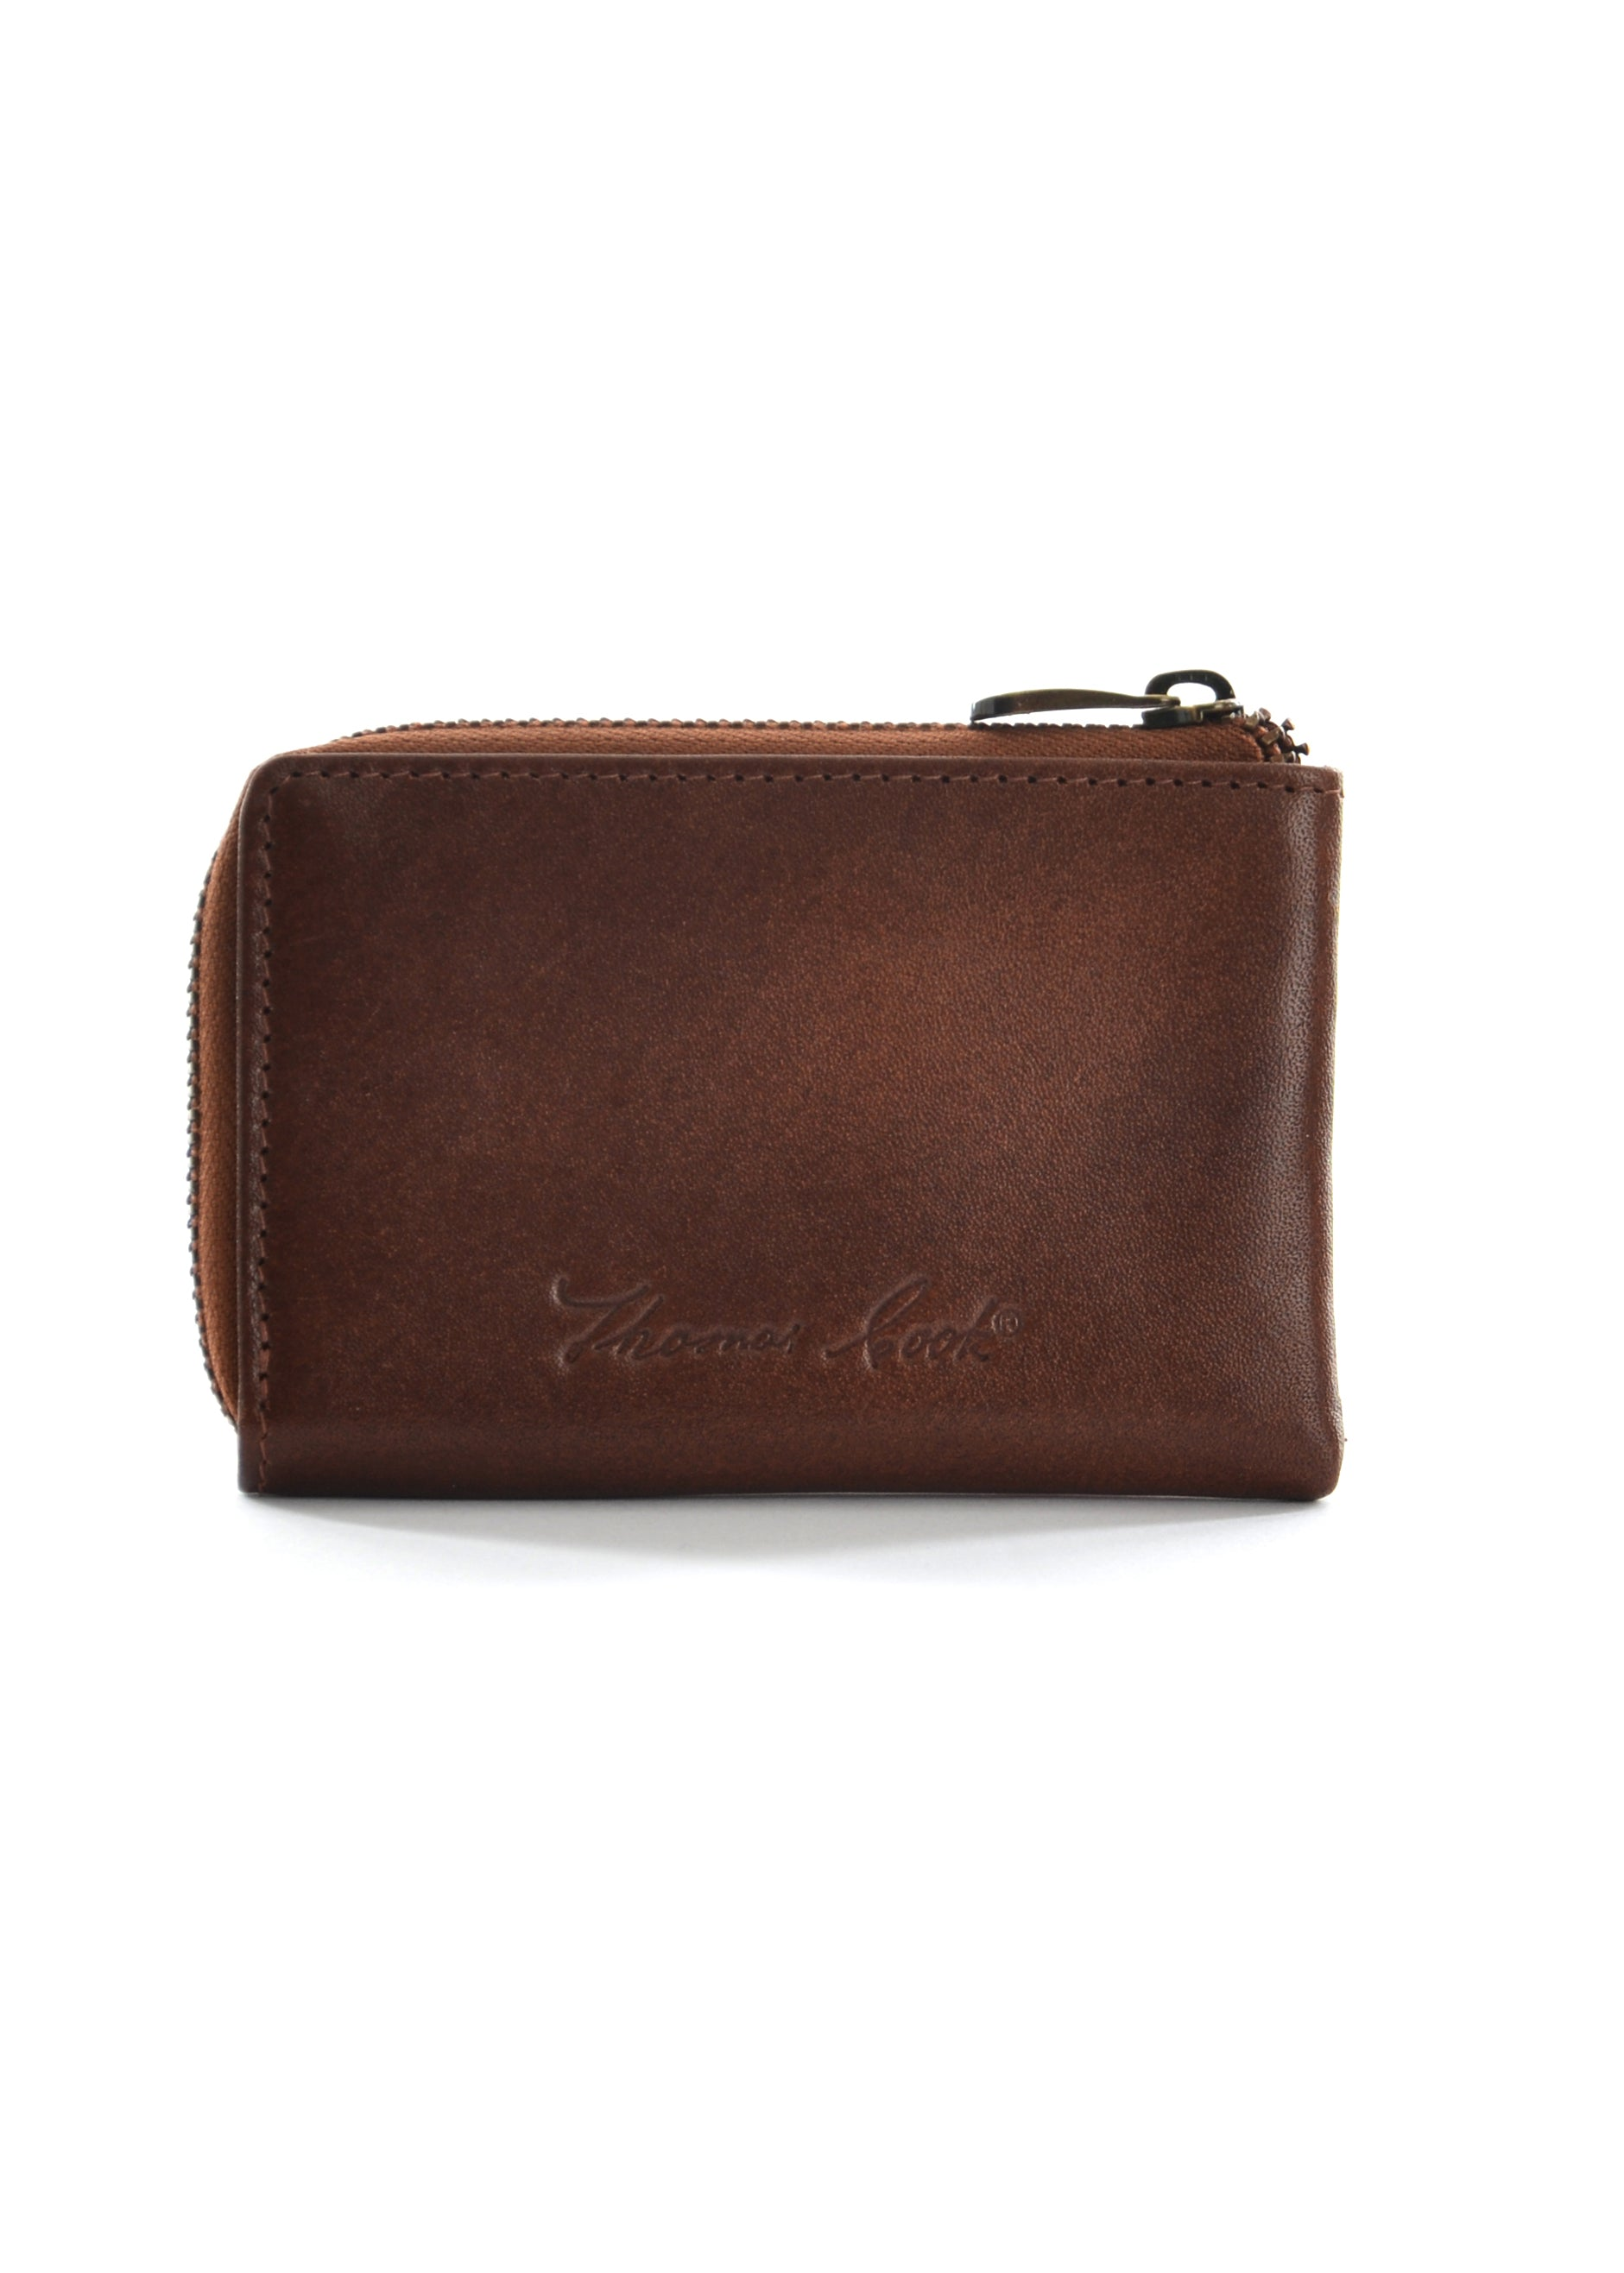 Cootamundra Leather Coin Wallet